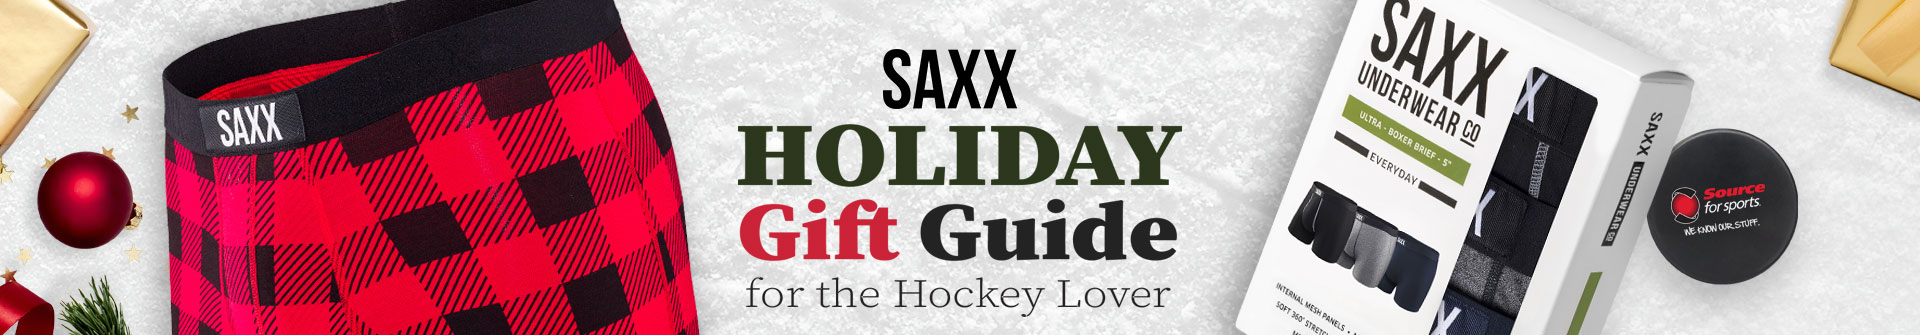 Shop SAXX Underwear Holiday Gift Ideas At Source For Sports Hockey Stores Near You.